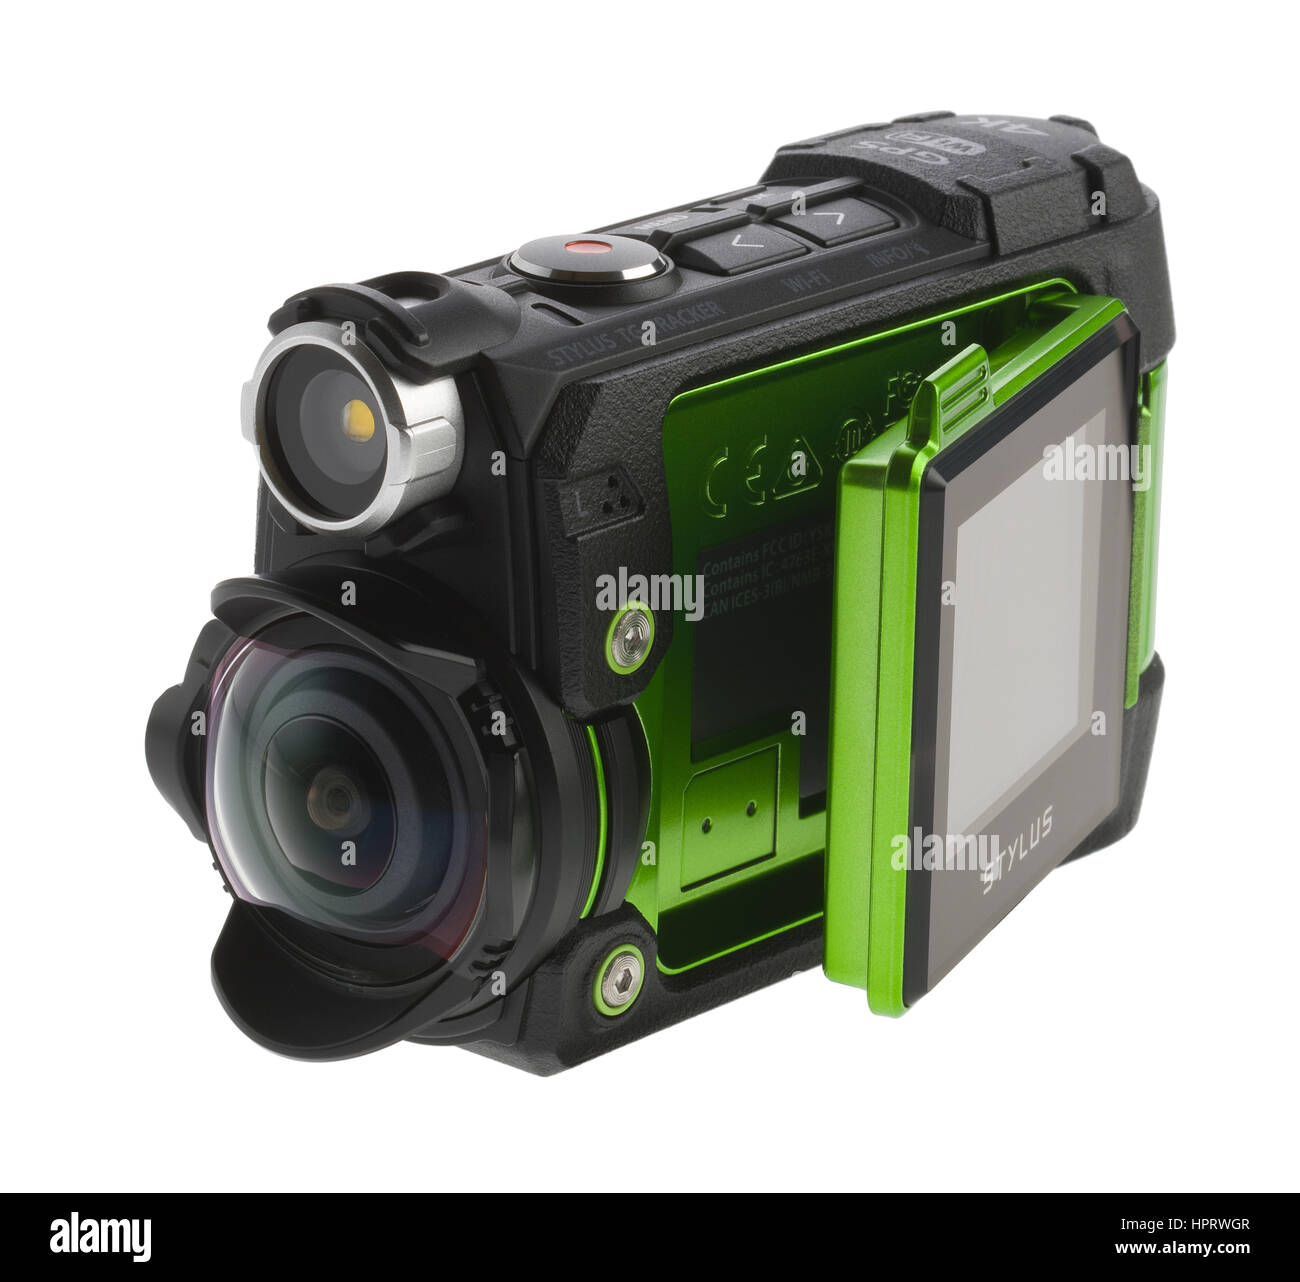 Olympus Tough video and stills camera. Movie camera for action sports. Can withstand very cold temperatures and - Stock Image